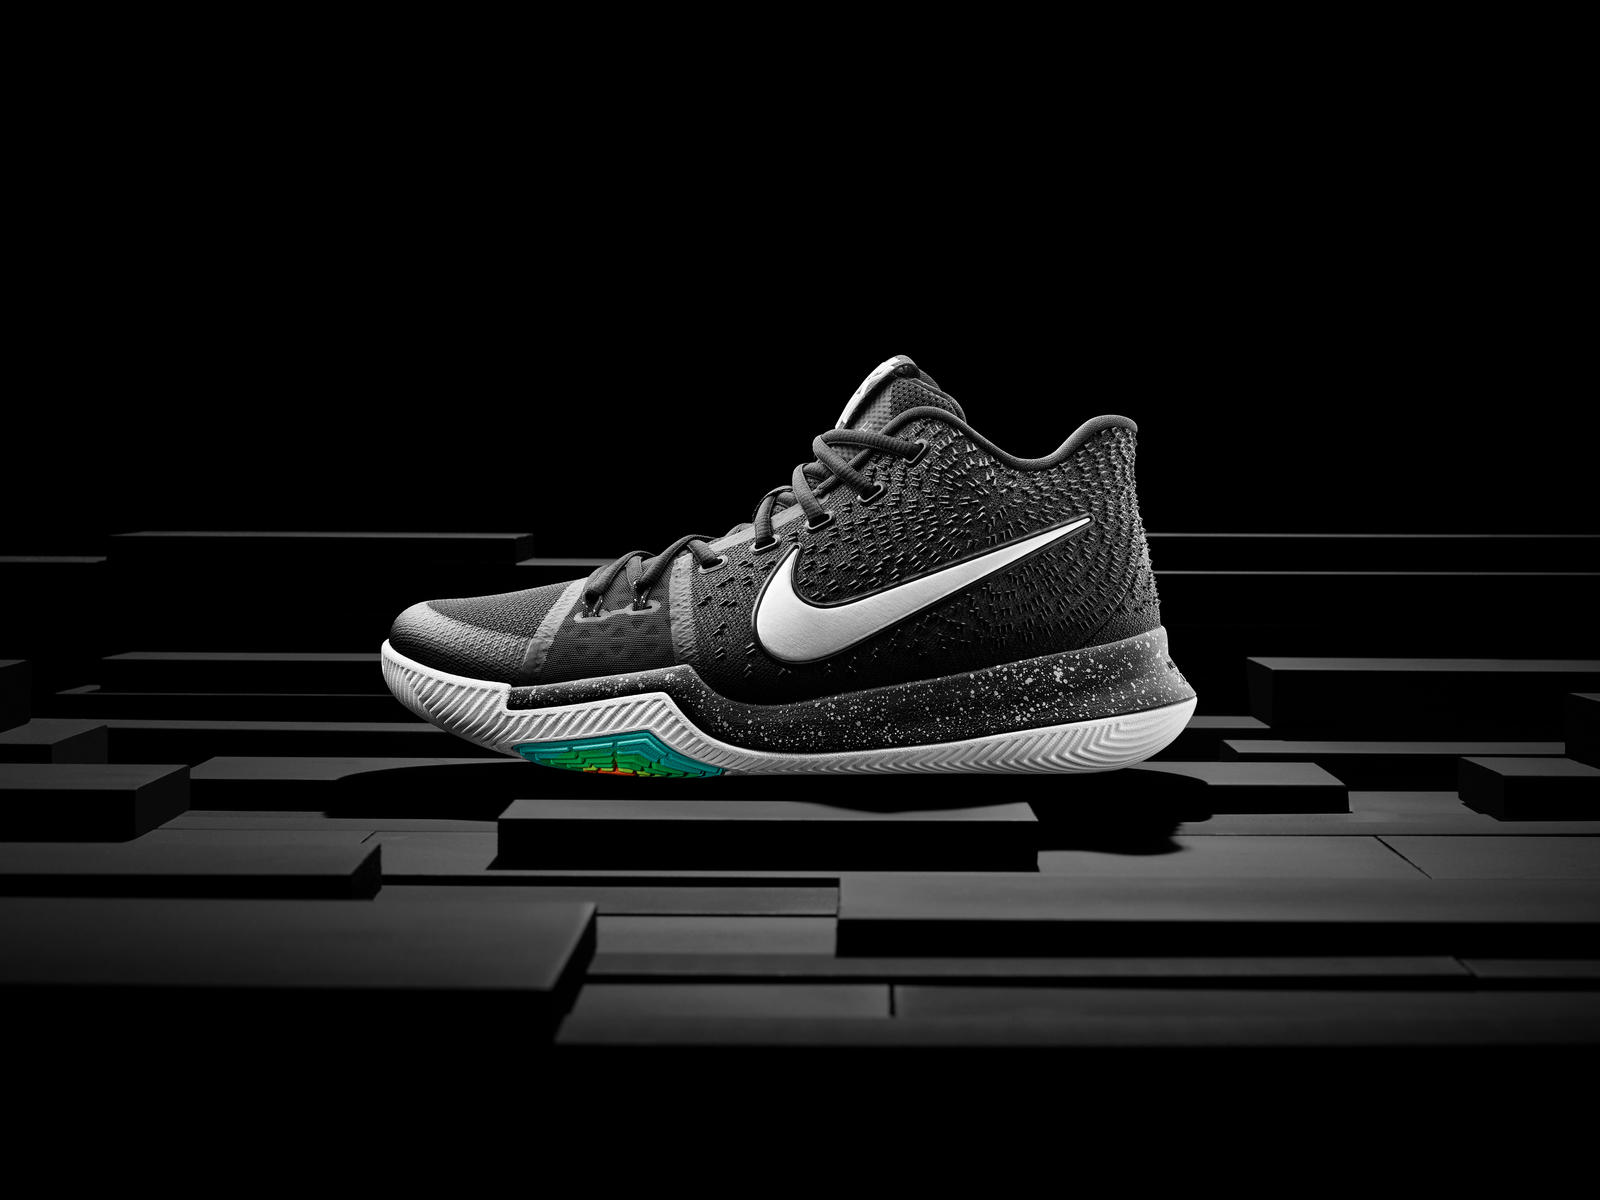 ed2f7c26b60e Nike Kyrie 3 PERFORMANCE REVIEW – The Ultimate Guard Shoe ...